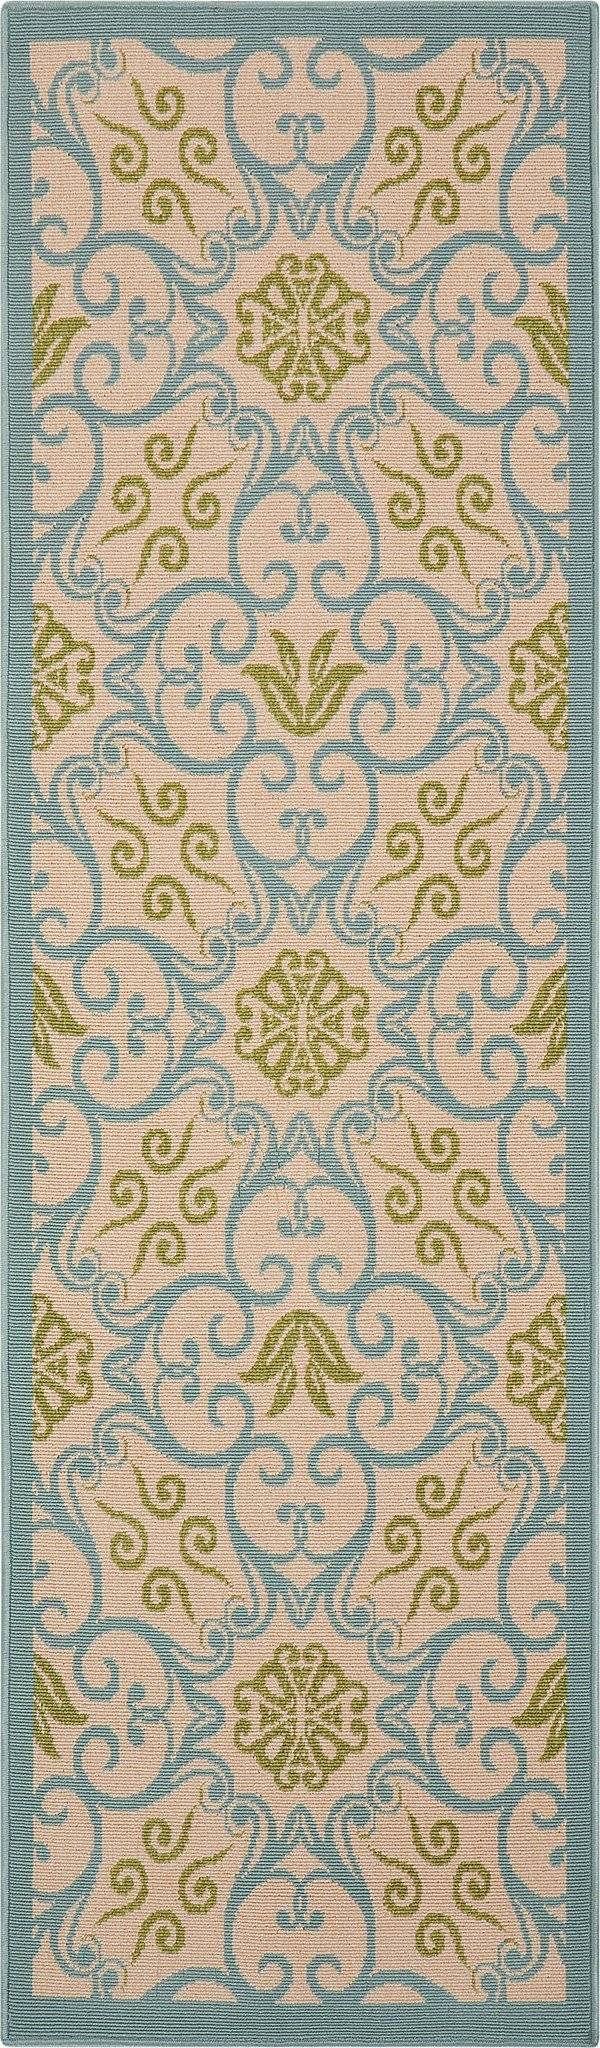 Caribbean Ivory Blue Indoor/Outdoor Rug - 7 Size Options Rugs Nourison